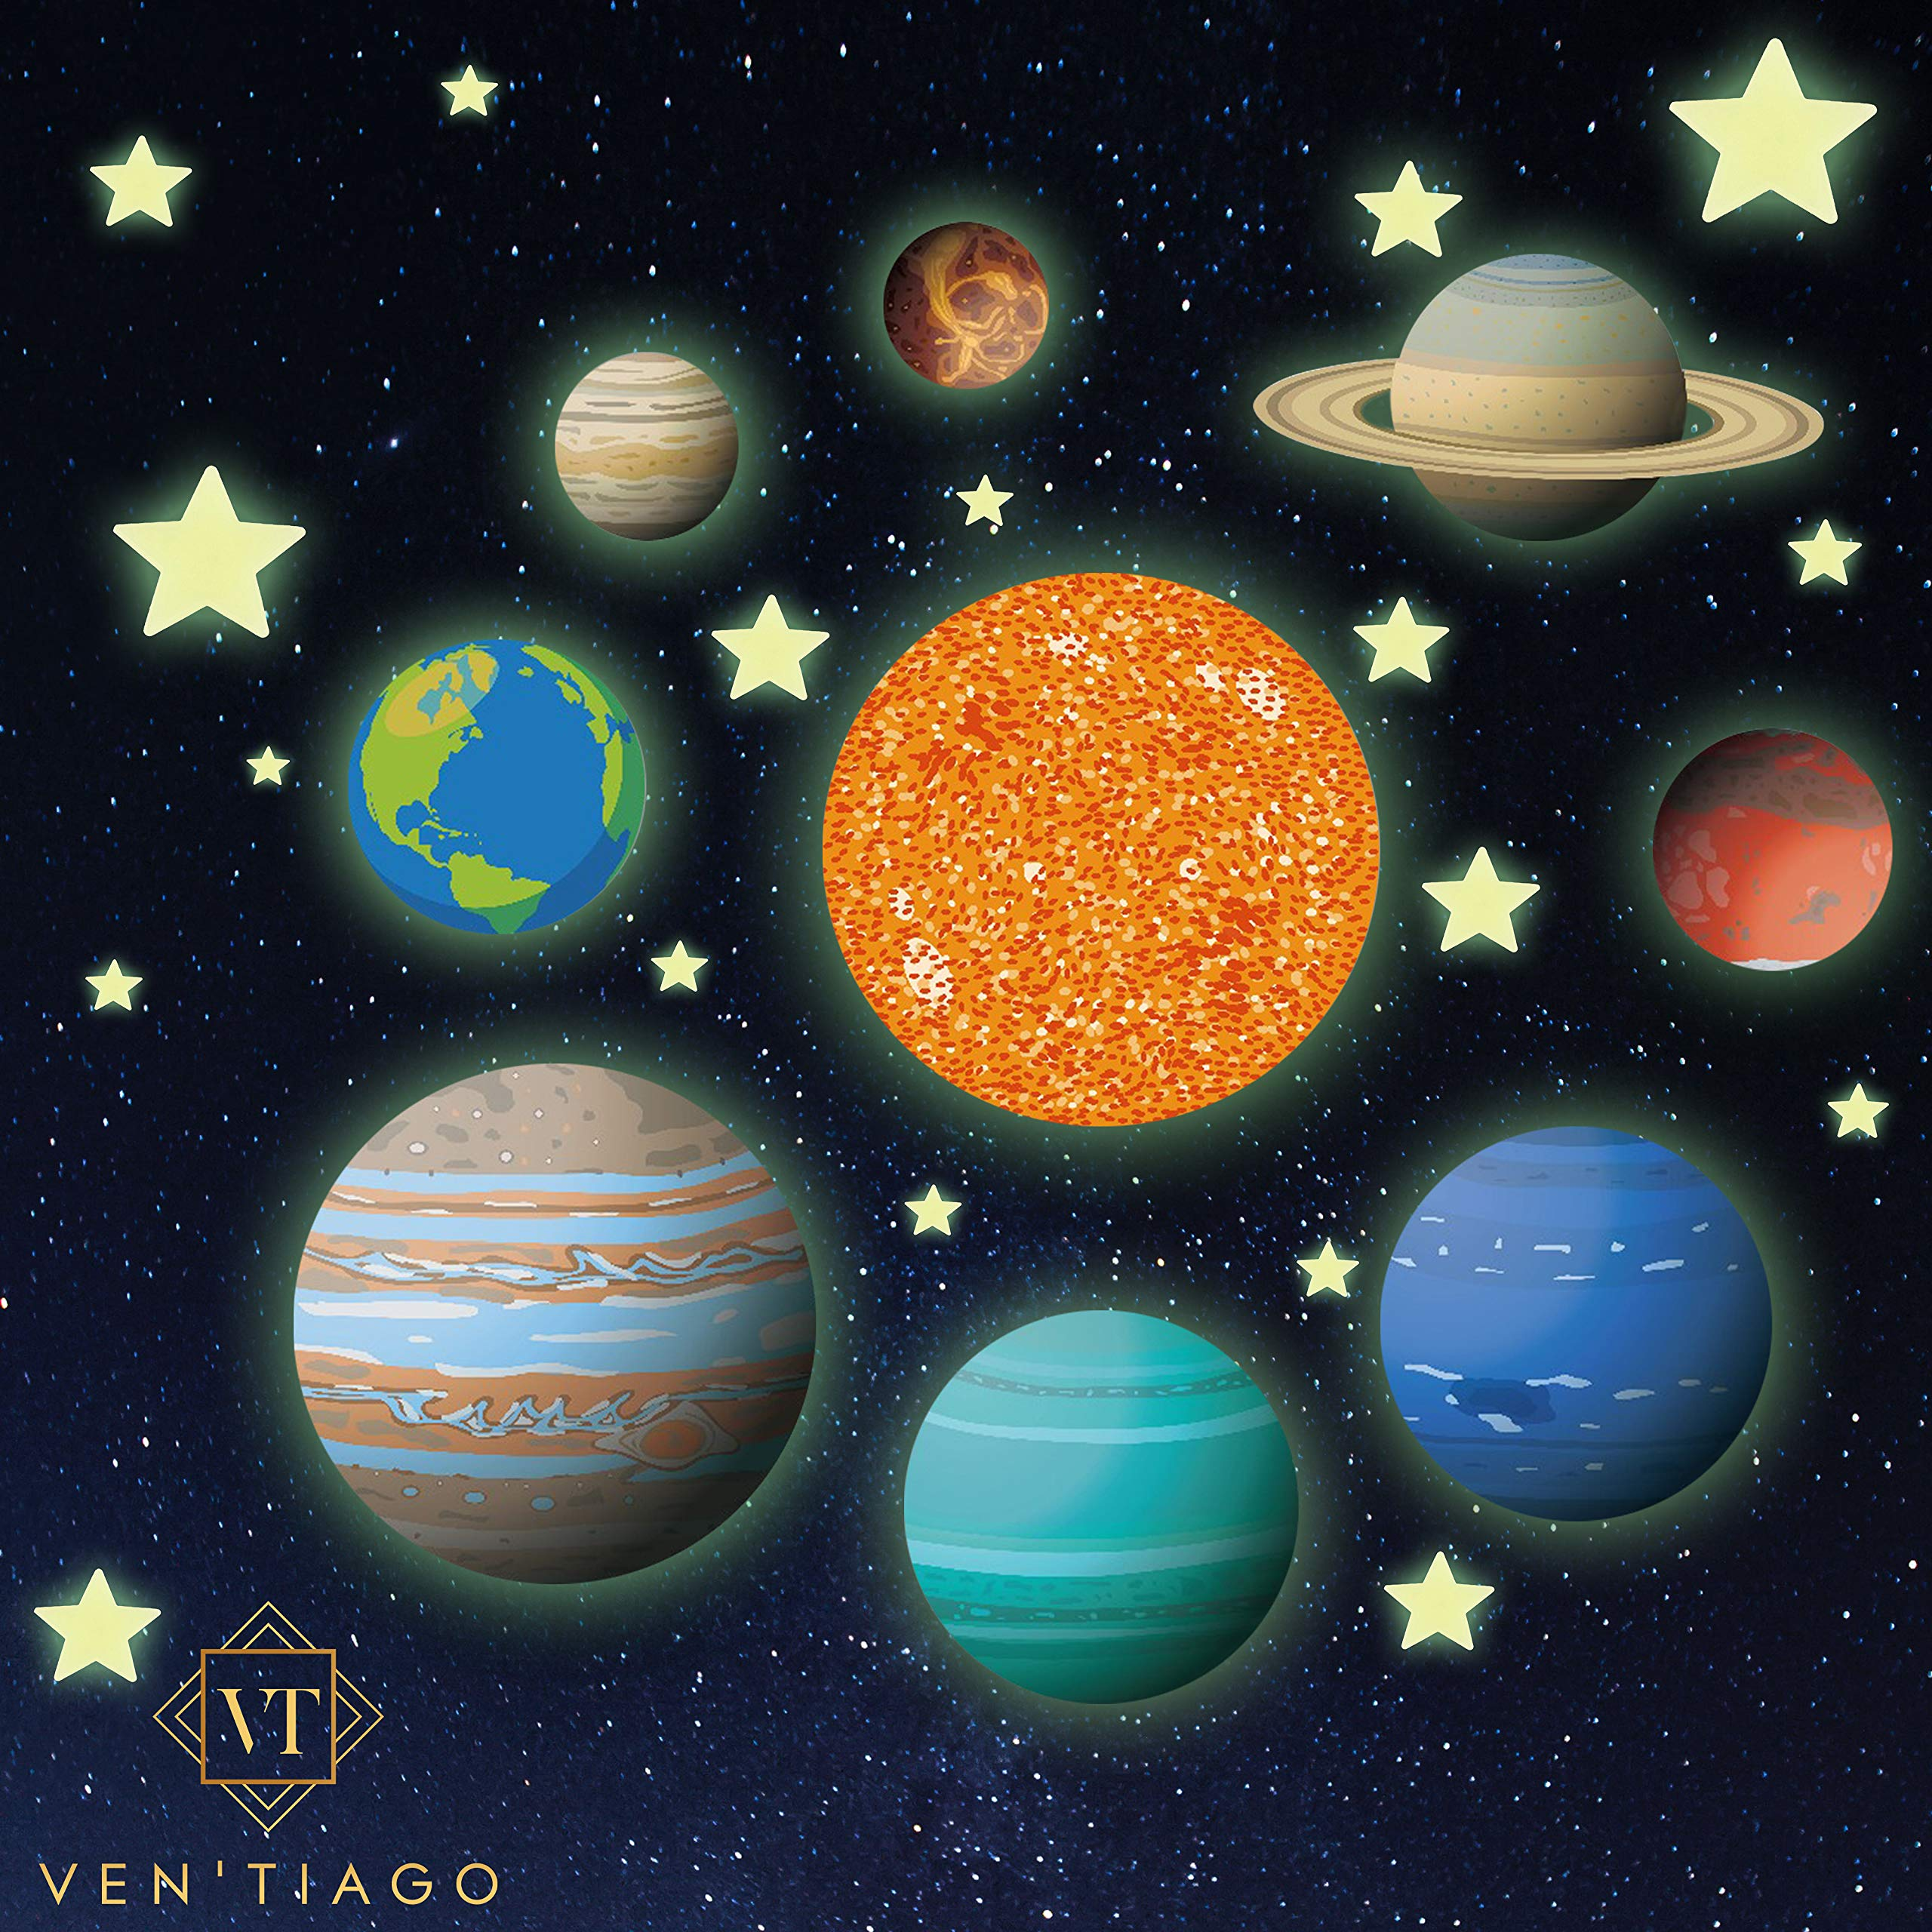 Ven'Tiago Glow in The Dark Planets and Stars, 9 Bright Solar System Planets and Sun, Light up The Night with Our Glowing Ceiling Sticker Decals, for Boys and Girls Bedroom & Living Room by Ven'Tiago